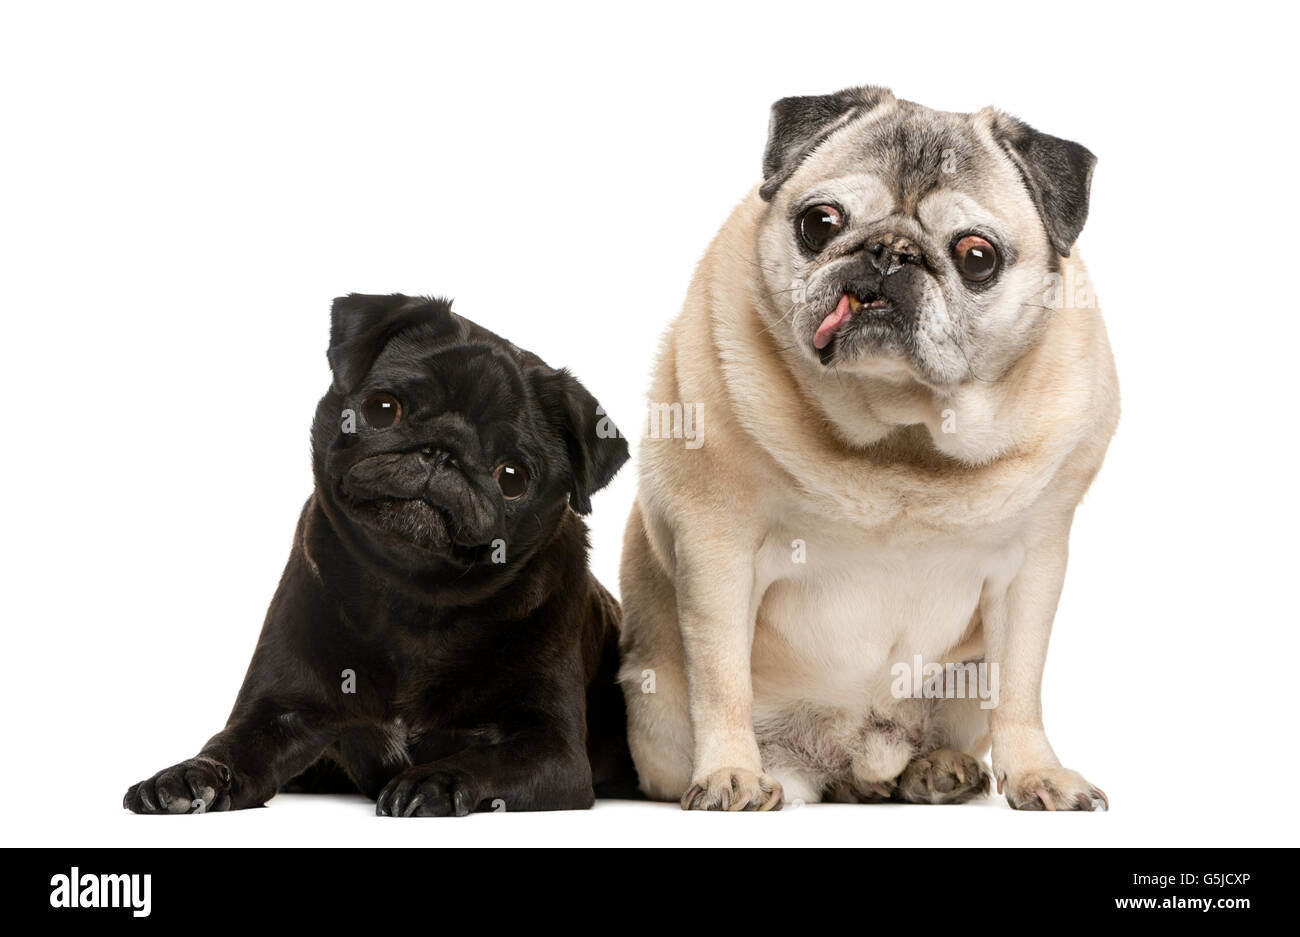 Two funny Pugs in front of white background - Stock Image